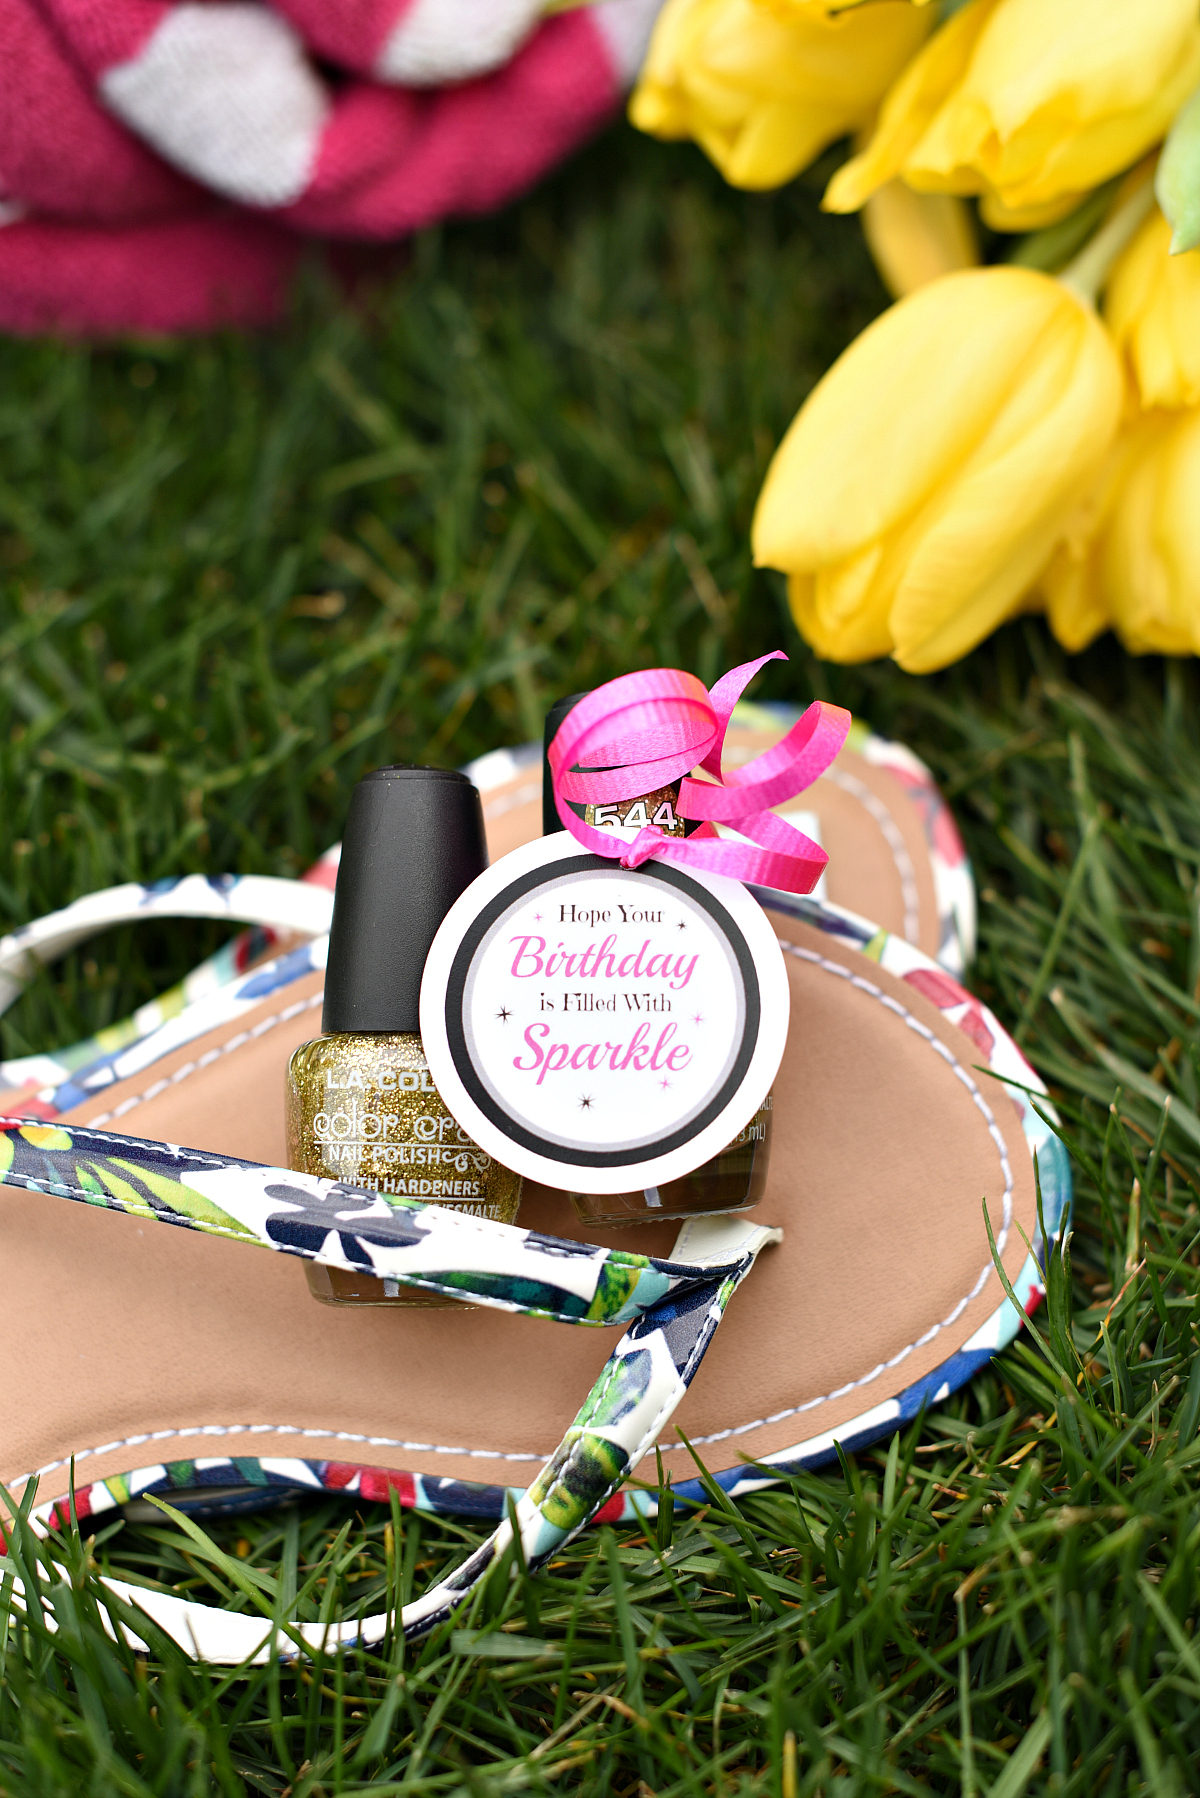 Cute Nail Polish Gift for Birthdays for Friends